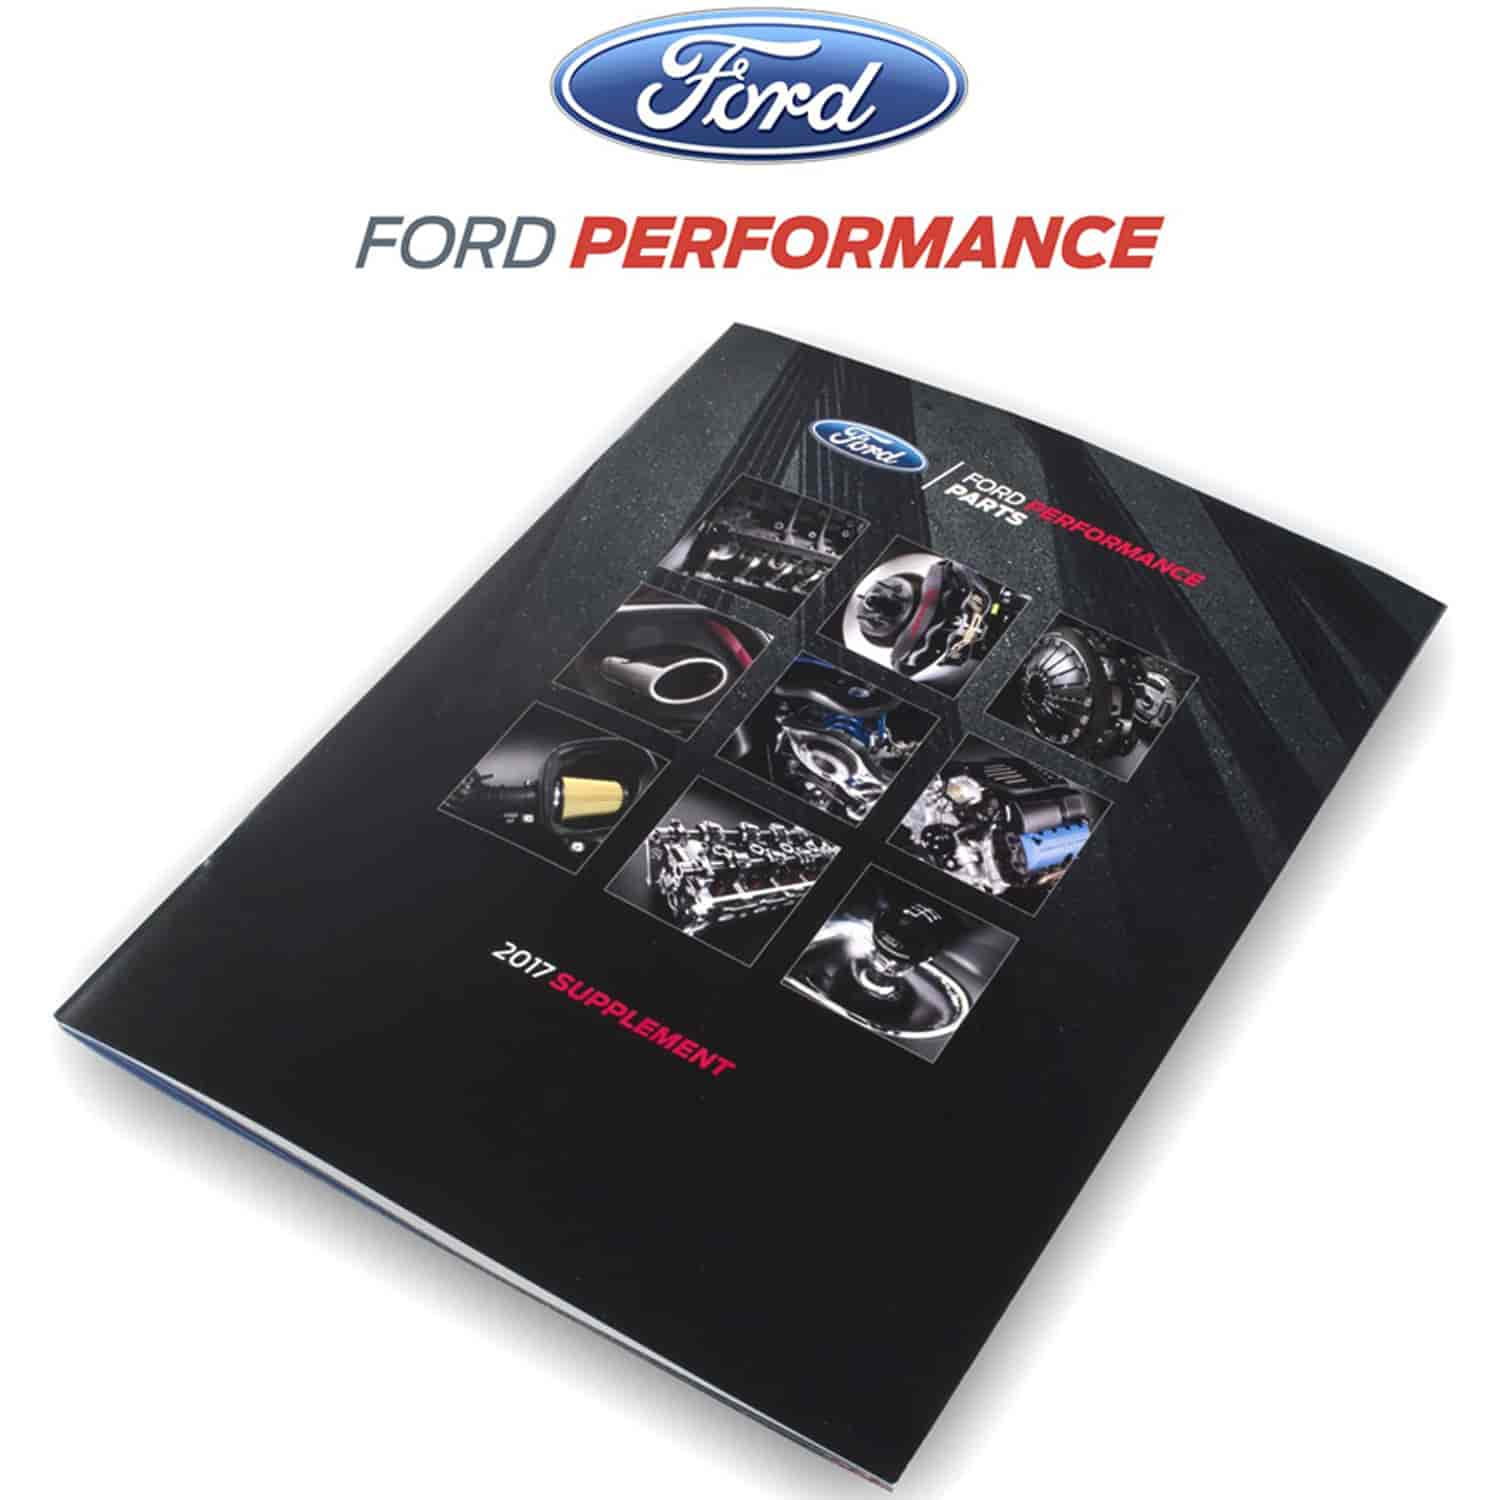 Ford performance m 0750 a2016